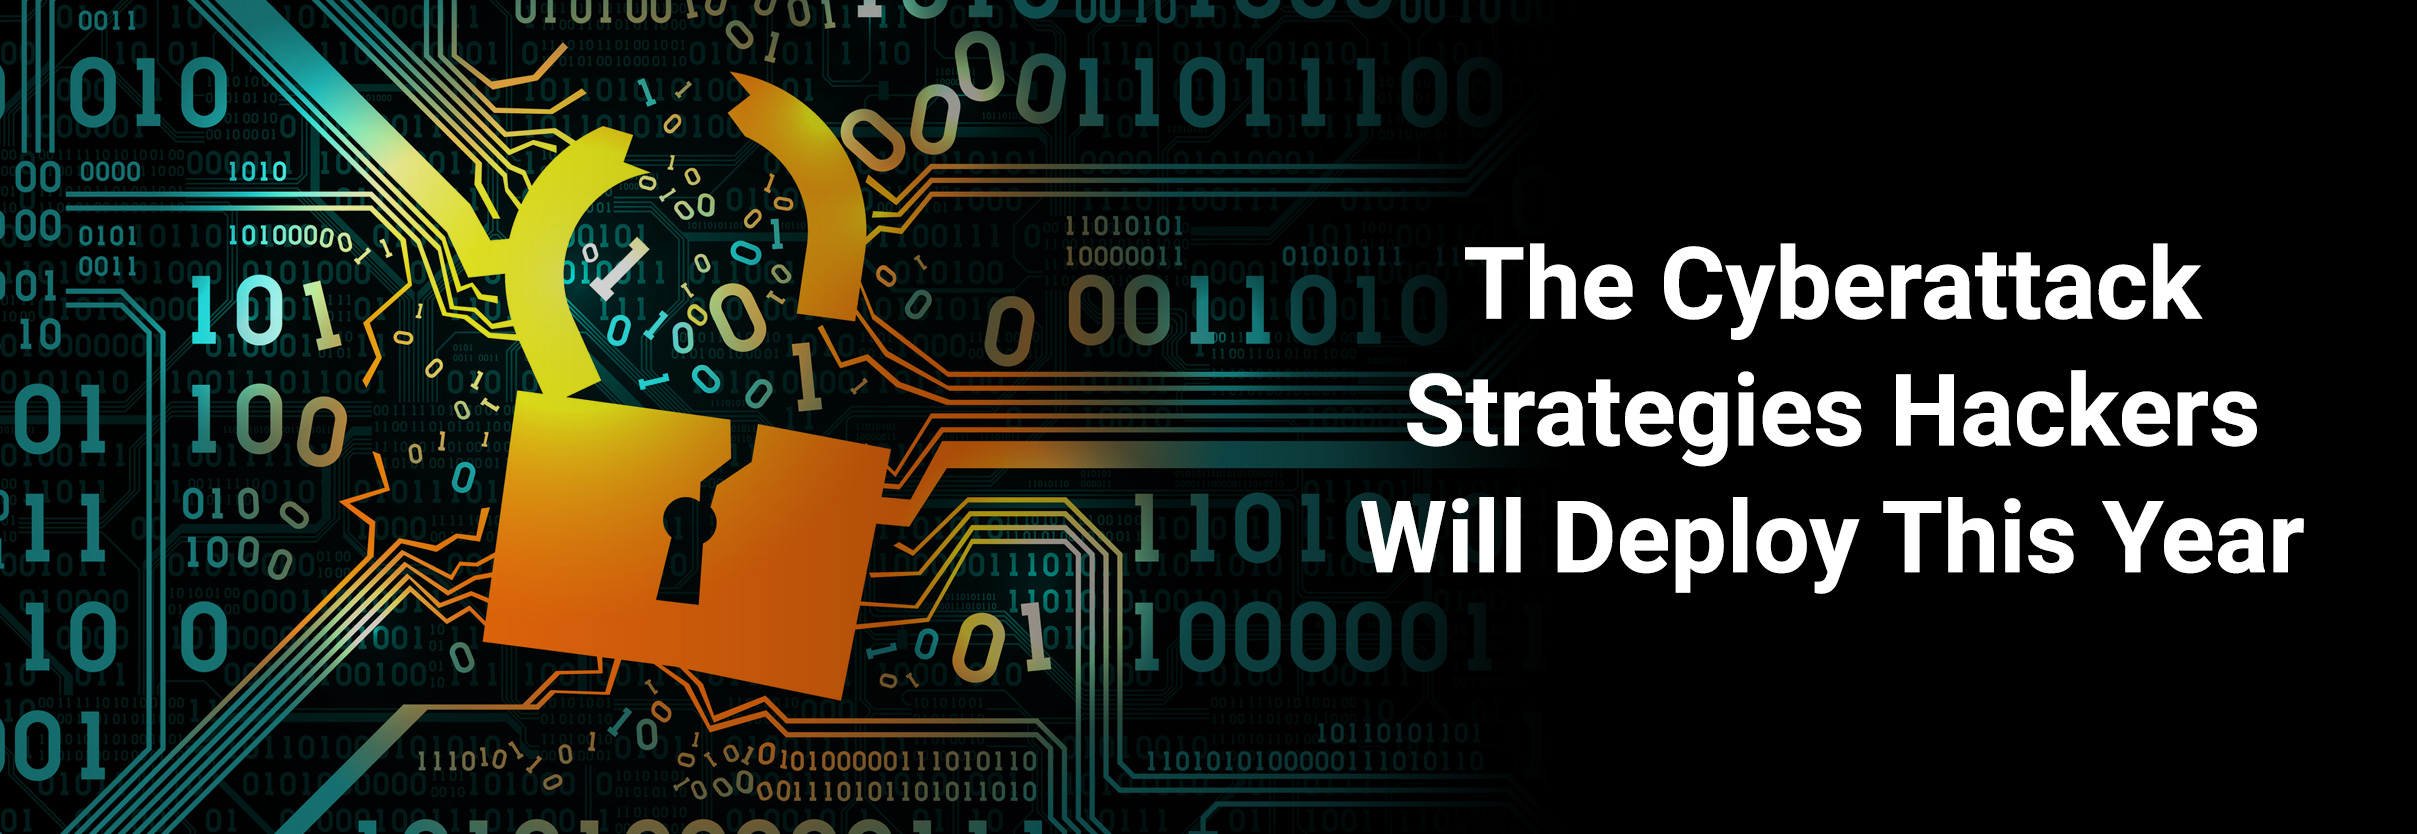 The Cyberattack Strategies Hackers Will Deploy This Year